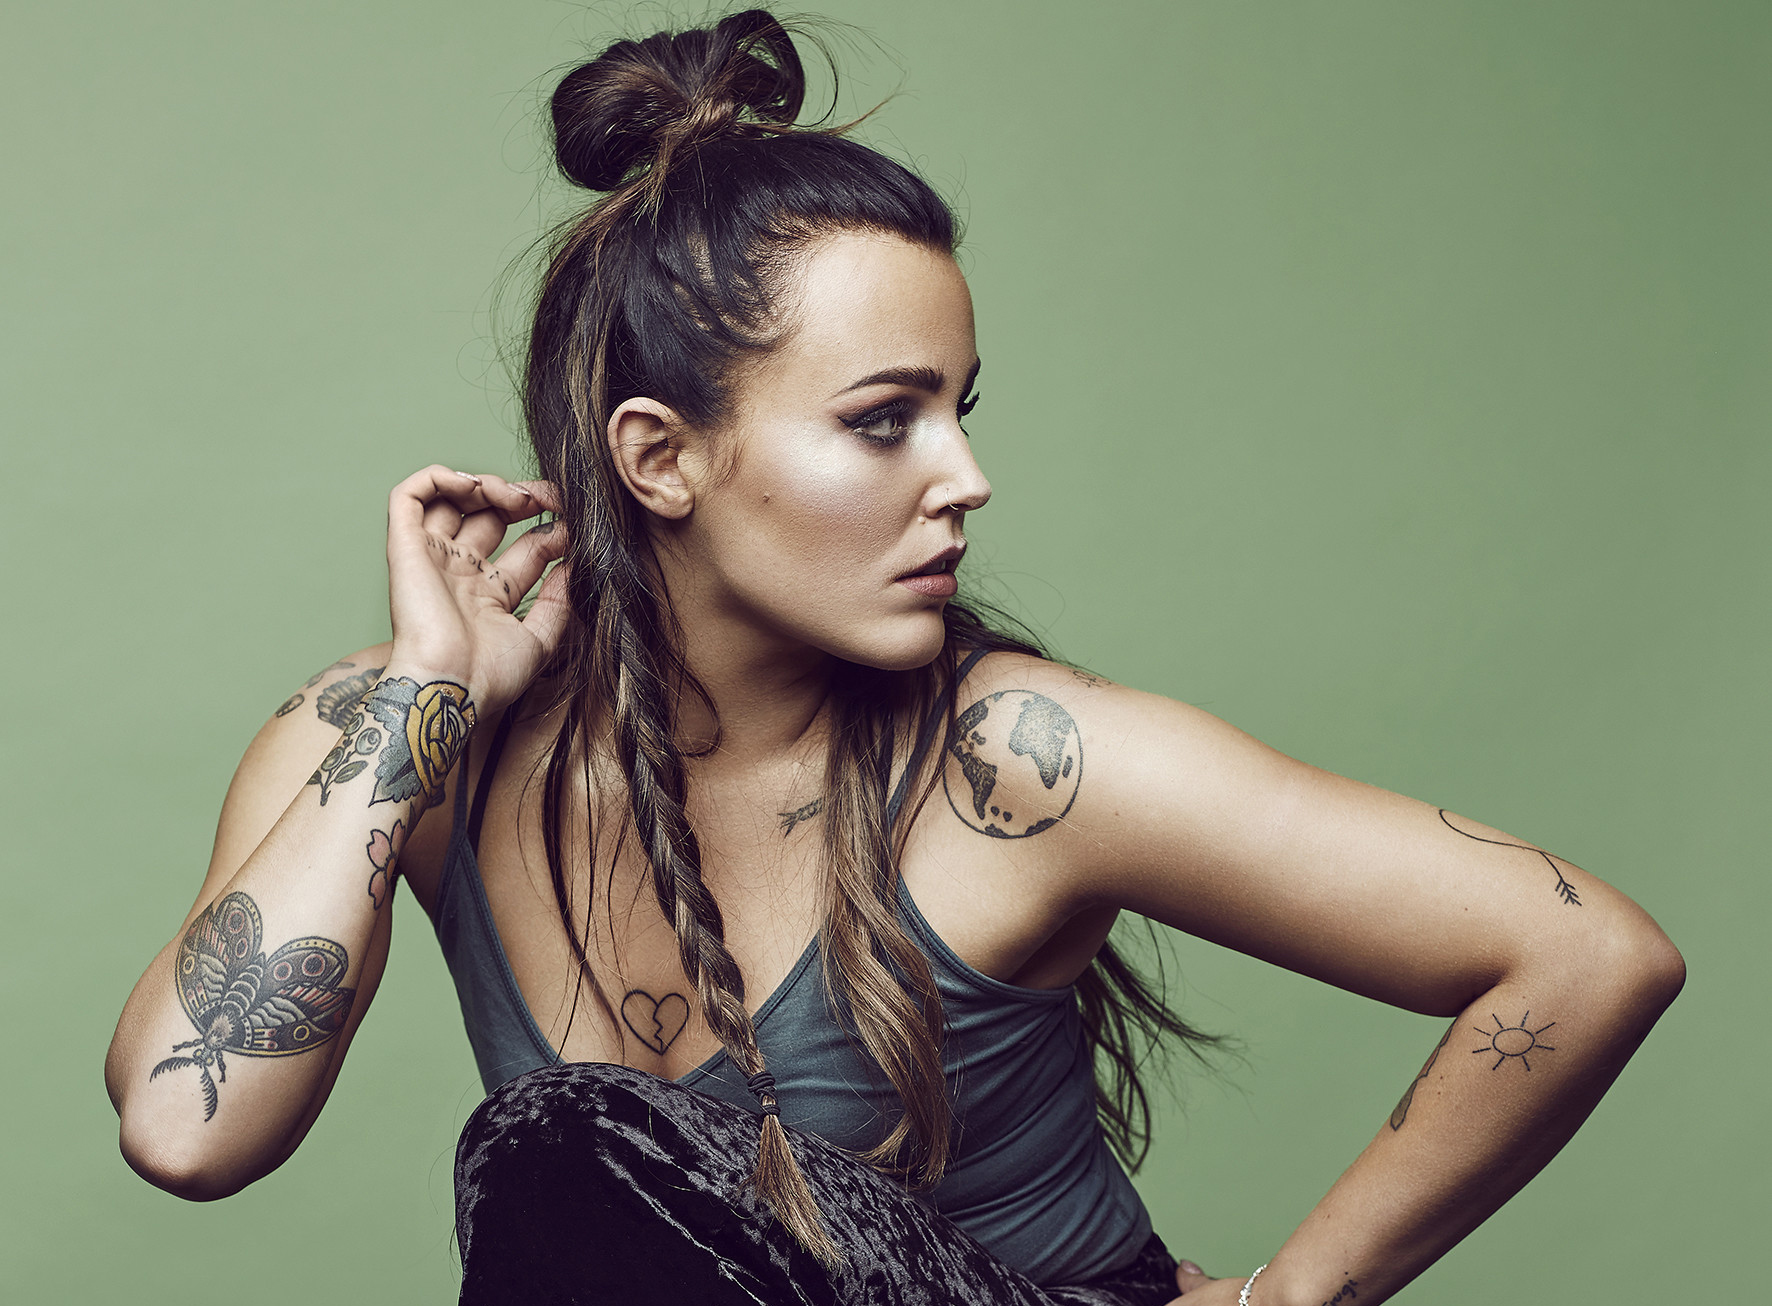 Tune in to 'Rocket' – the latest single from Miriam Bryant!